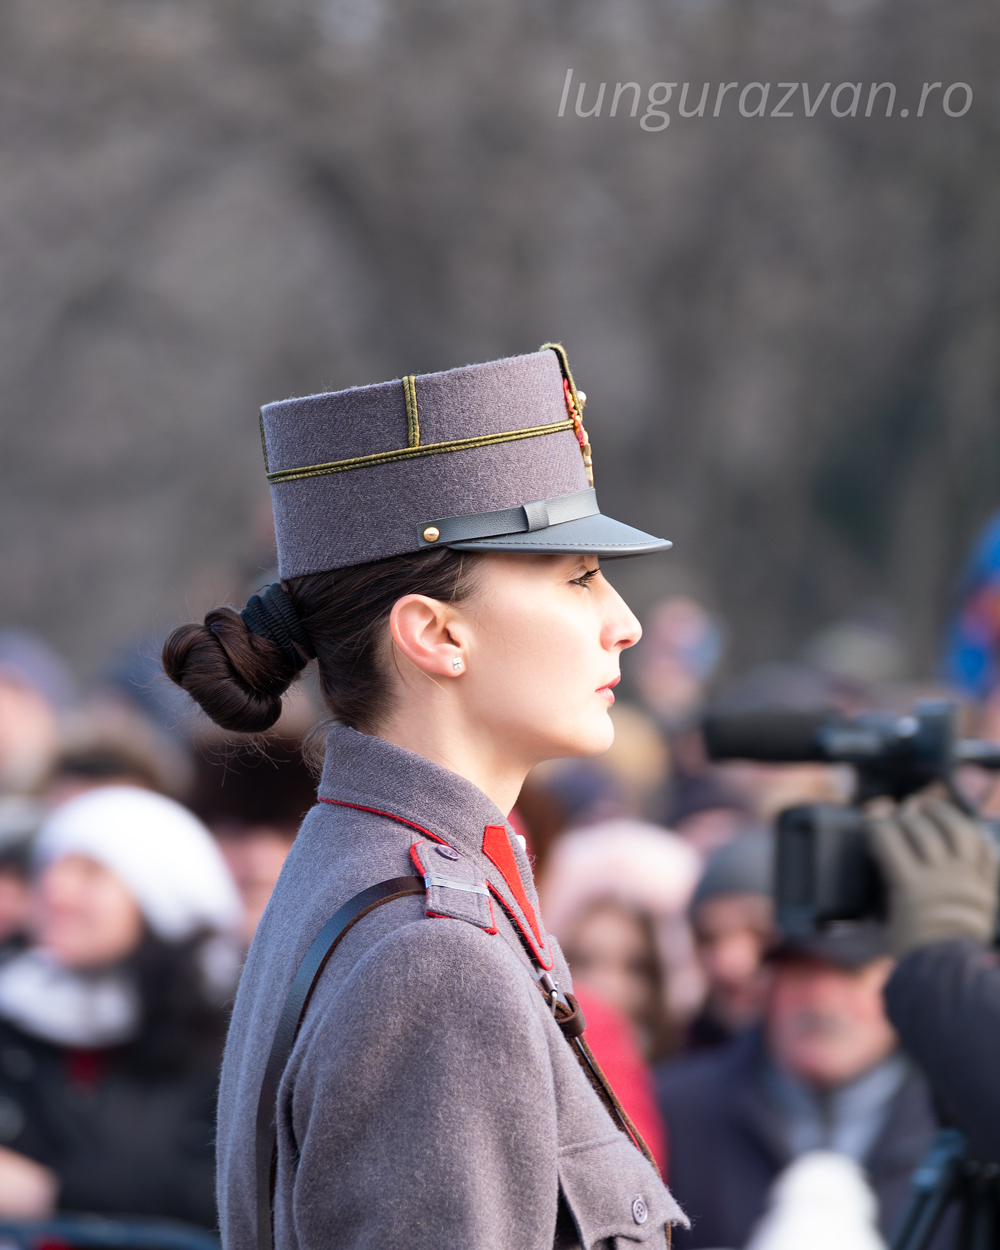 Beauty and Honor, a beaitiful female soldier in uniform